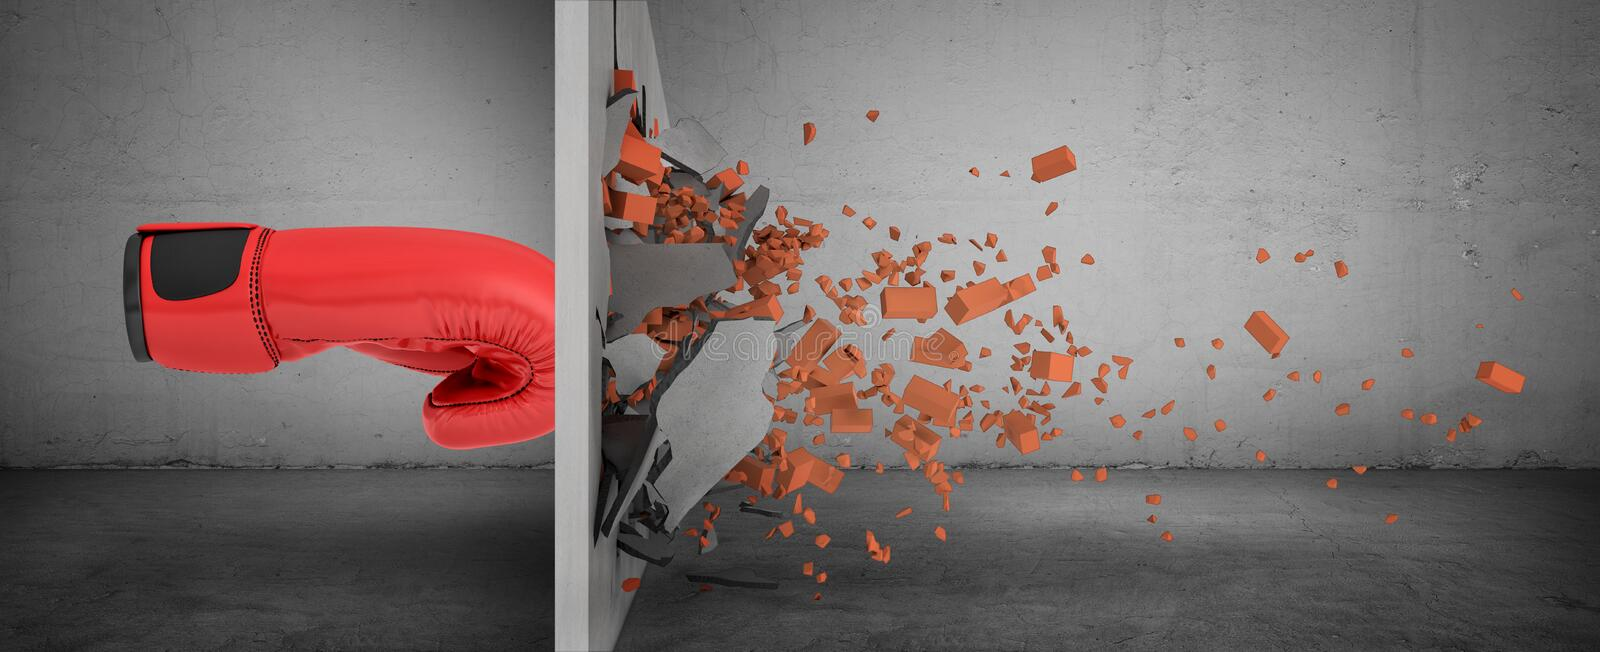 3d rendering of a huge red boxing glove in side view touches a brick wall and smashes it with rubble falling out. Force and strength. Breaking obstacles. Crash vector illustration